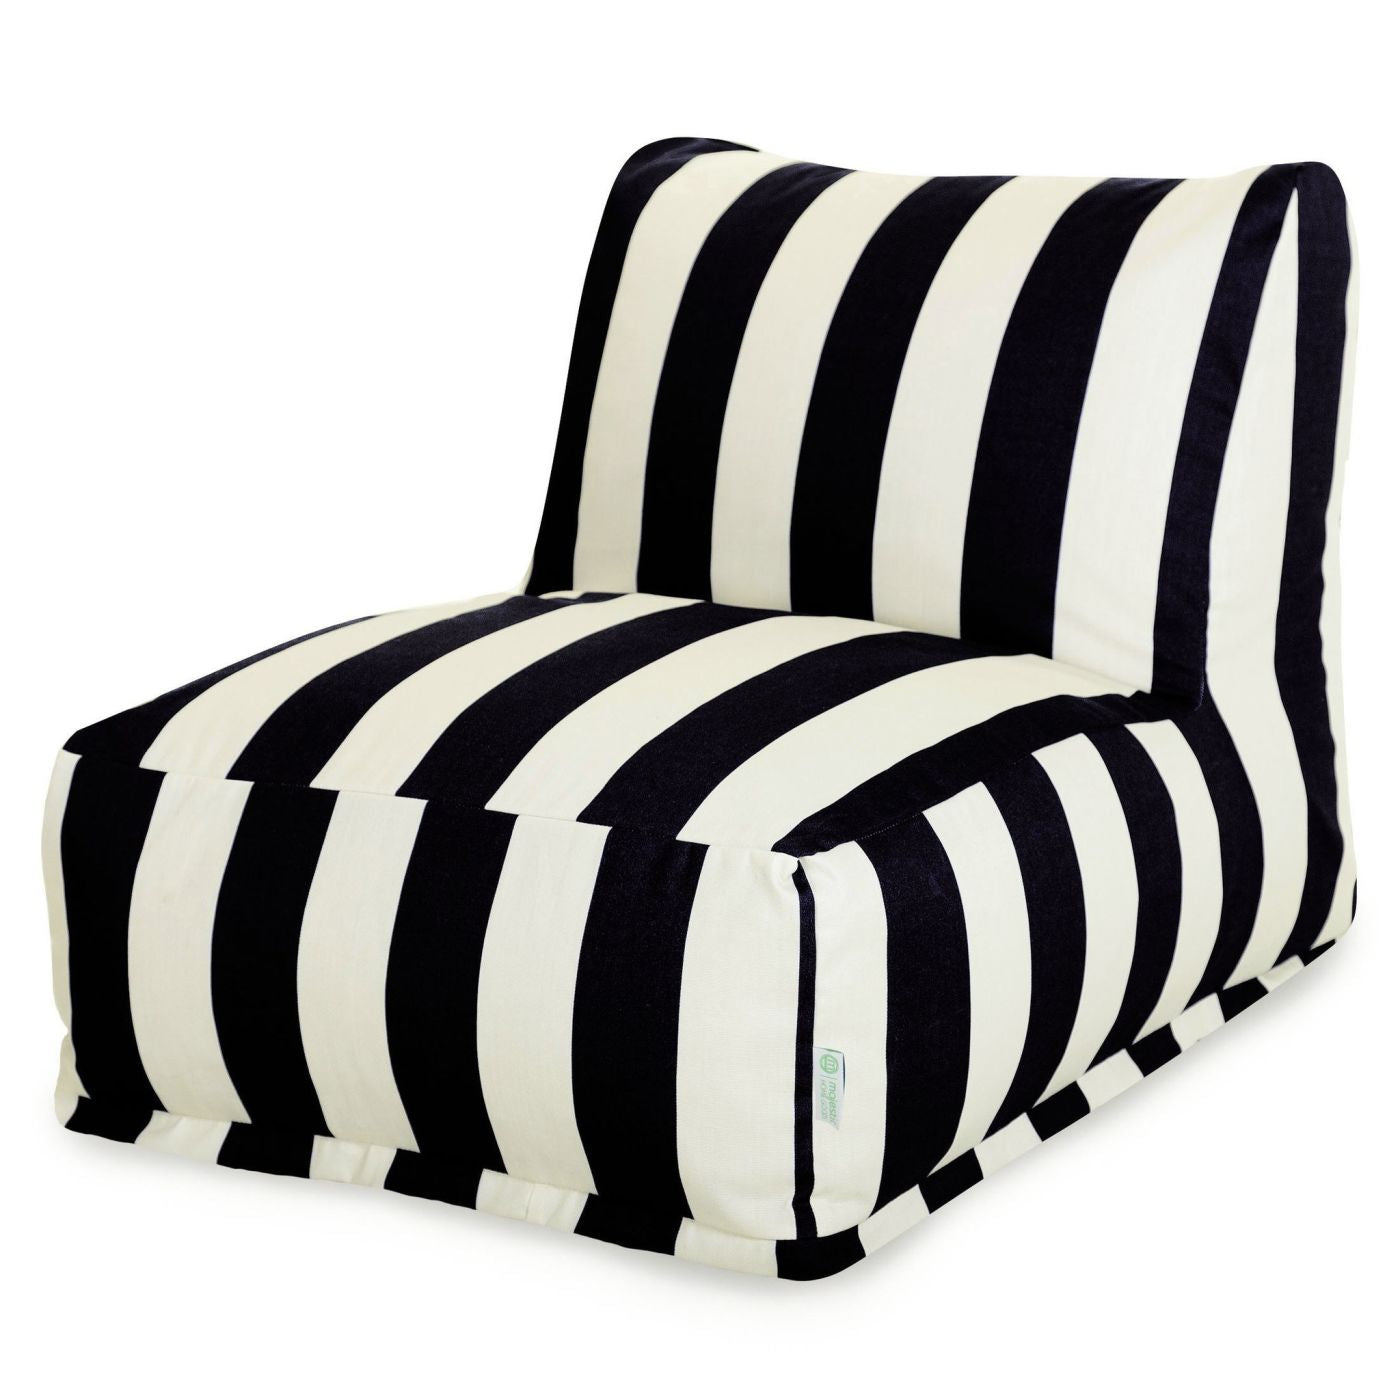 Majestic Home Black Vertical Stripe Bean Bag Chair Lounger